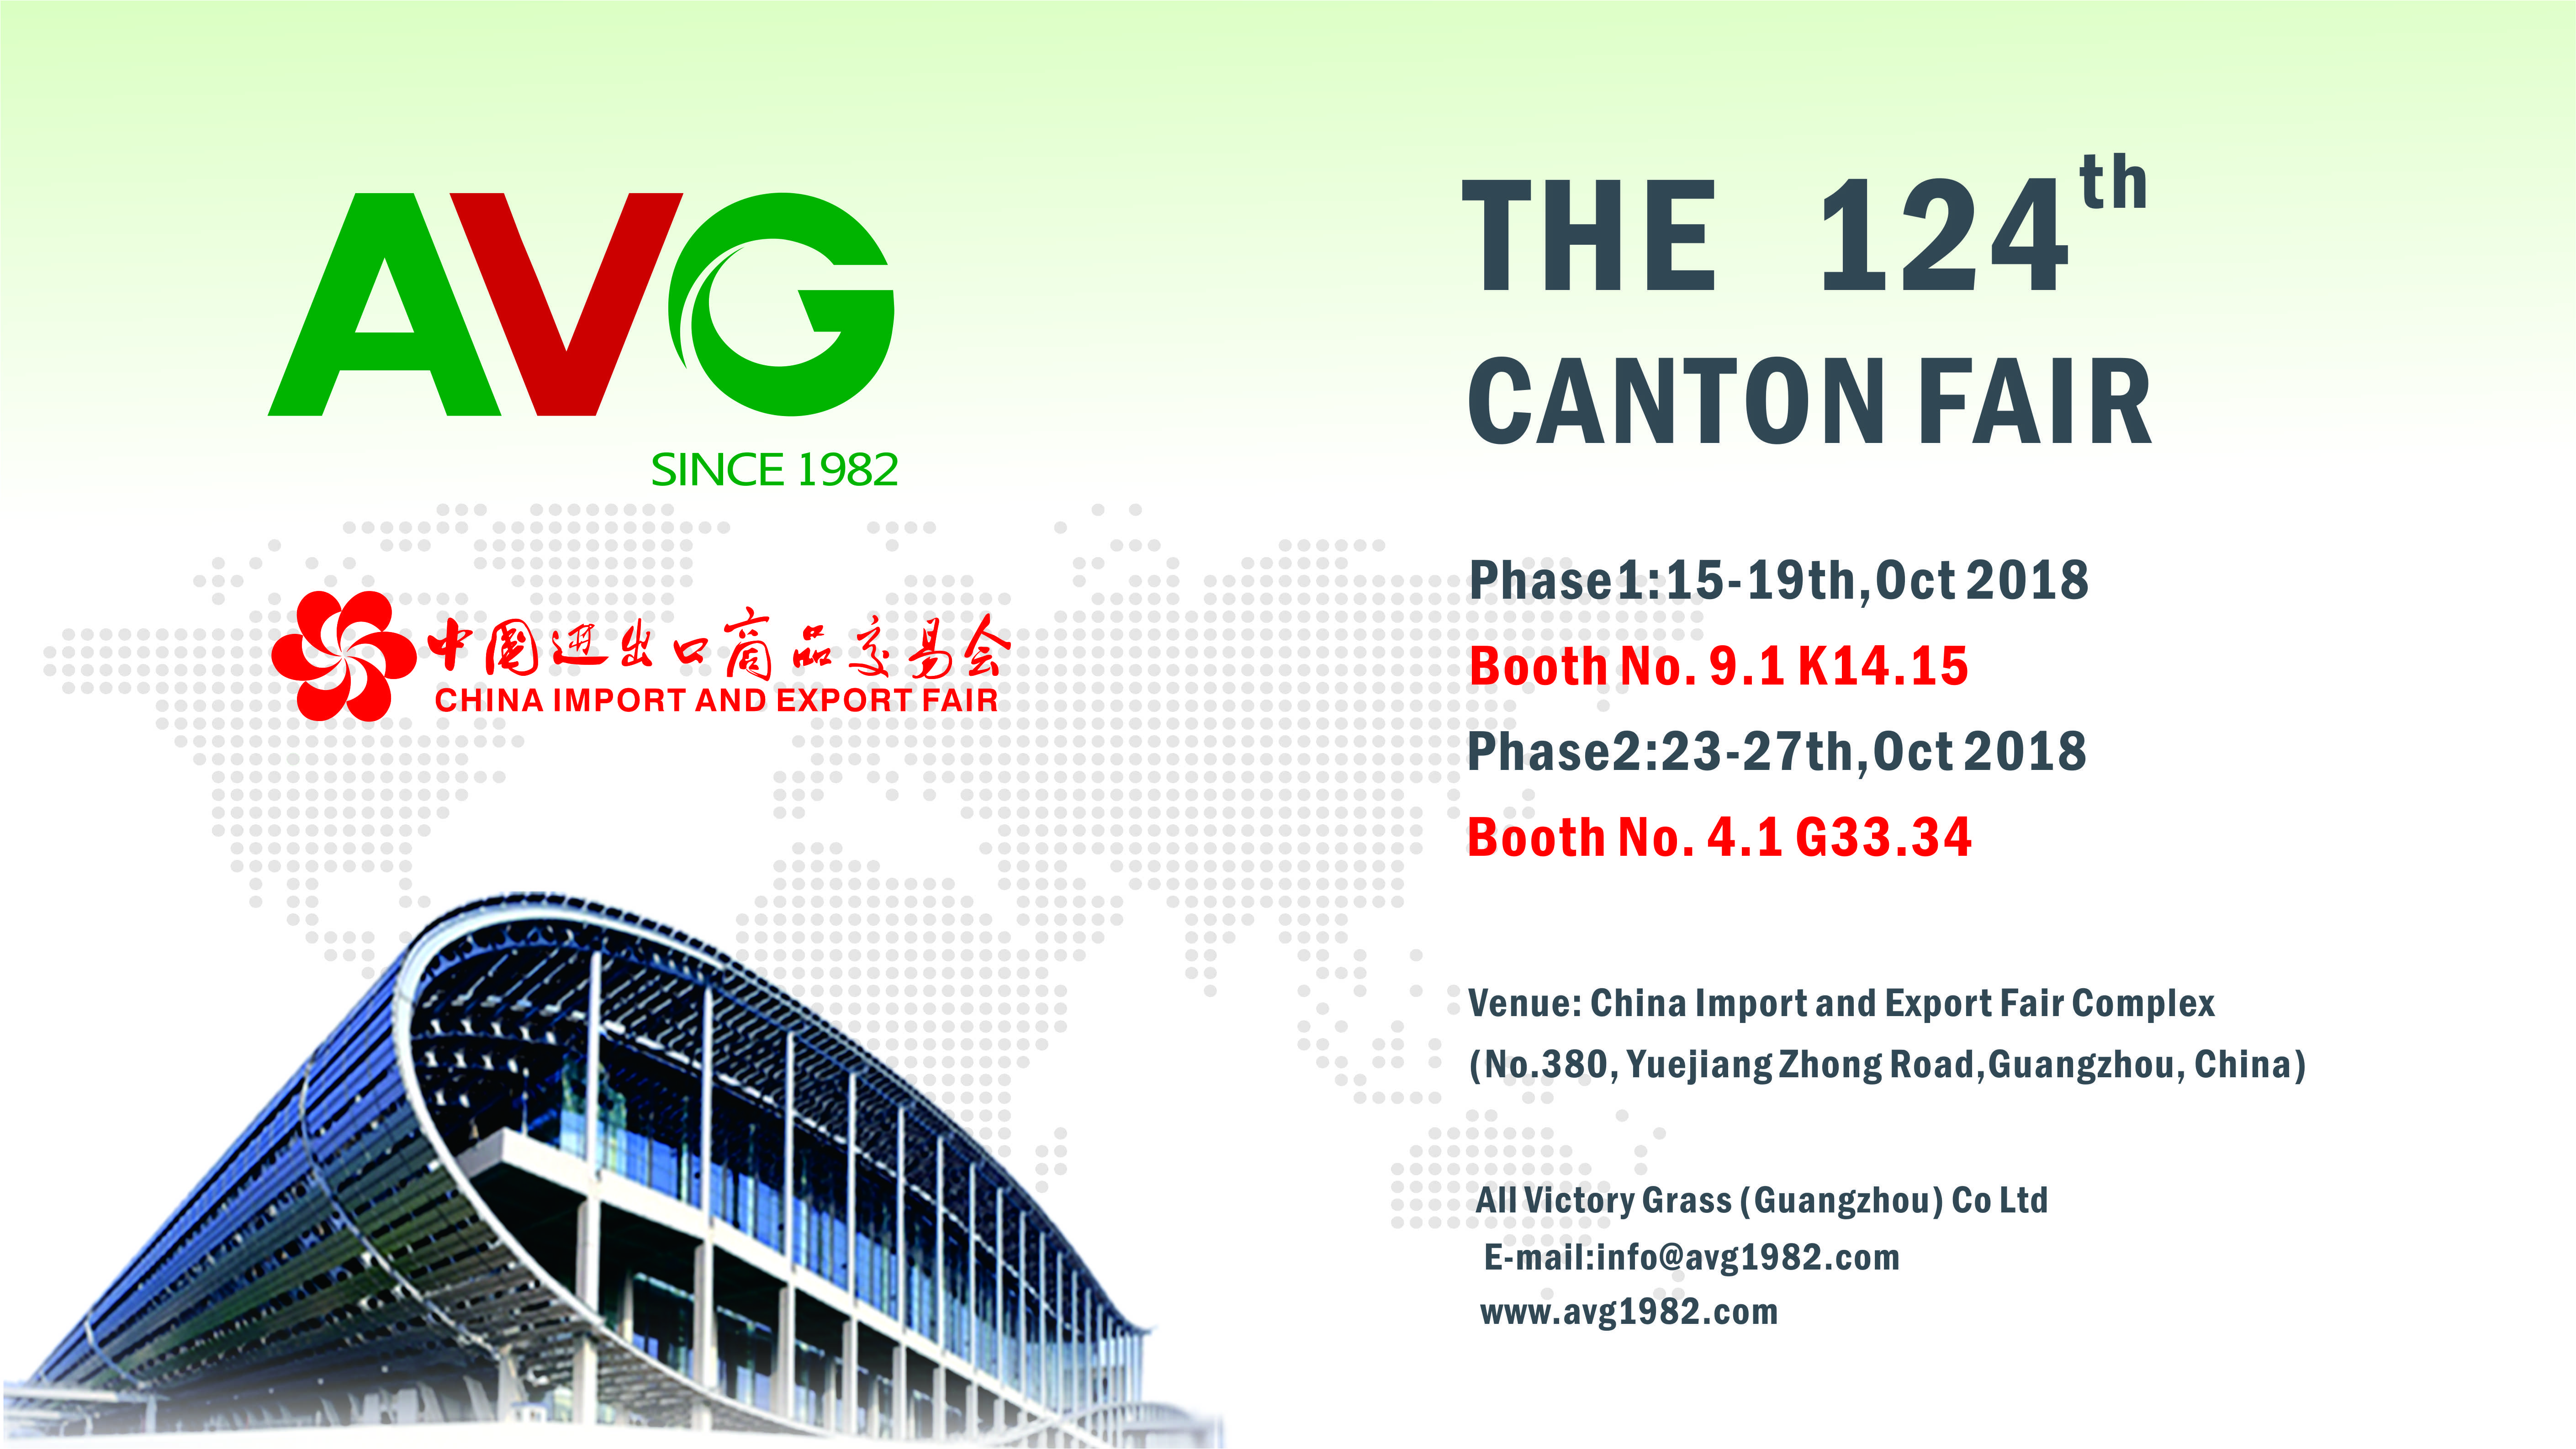 The 124th Canton Fair and the 12th Int'l Garden Expo Tokyo ended with success